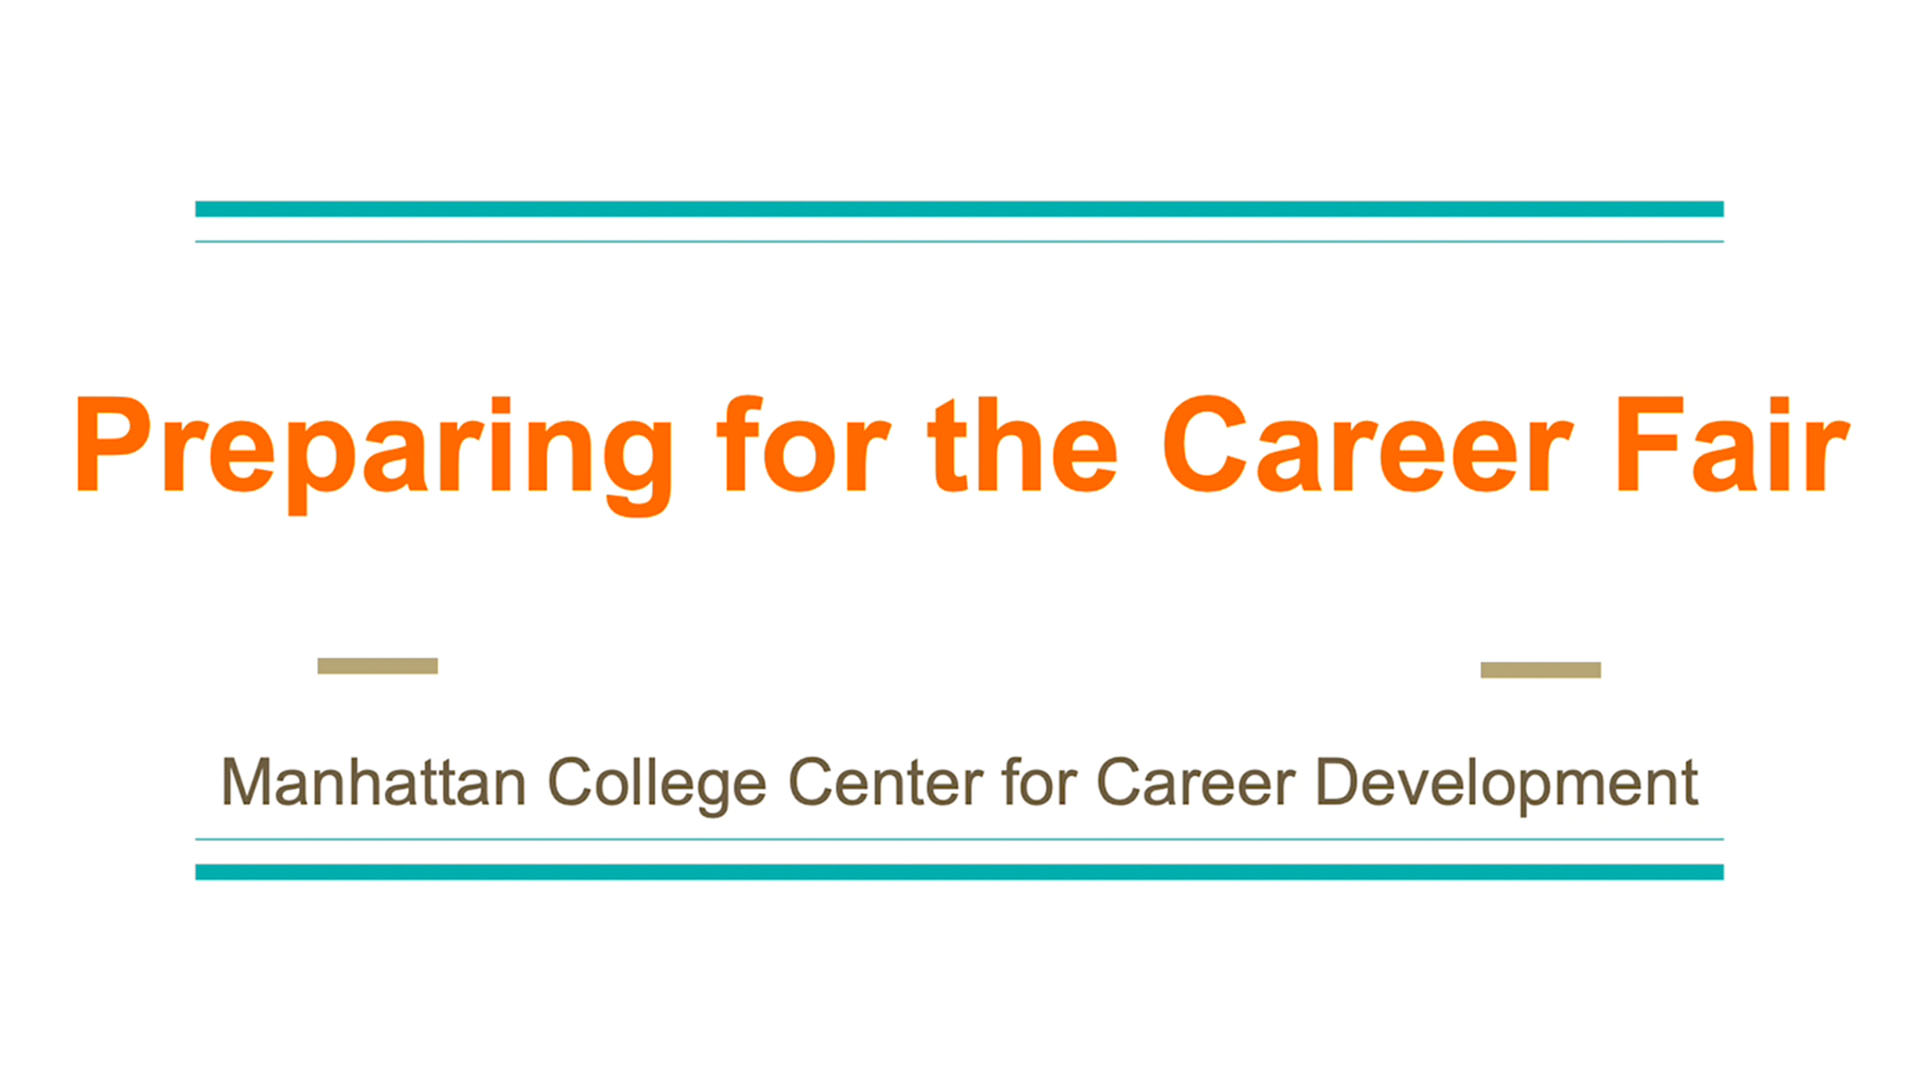 Career Fair Prep, Manhattan College Center for Career Development